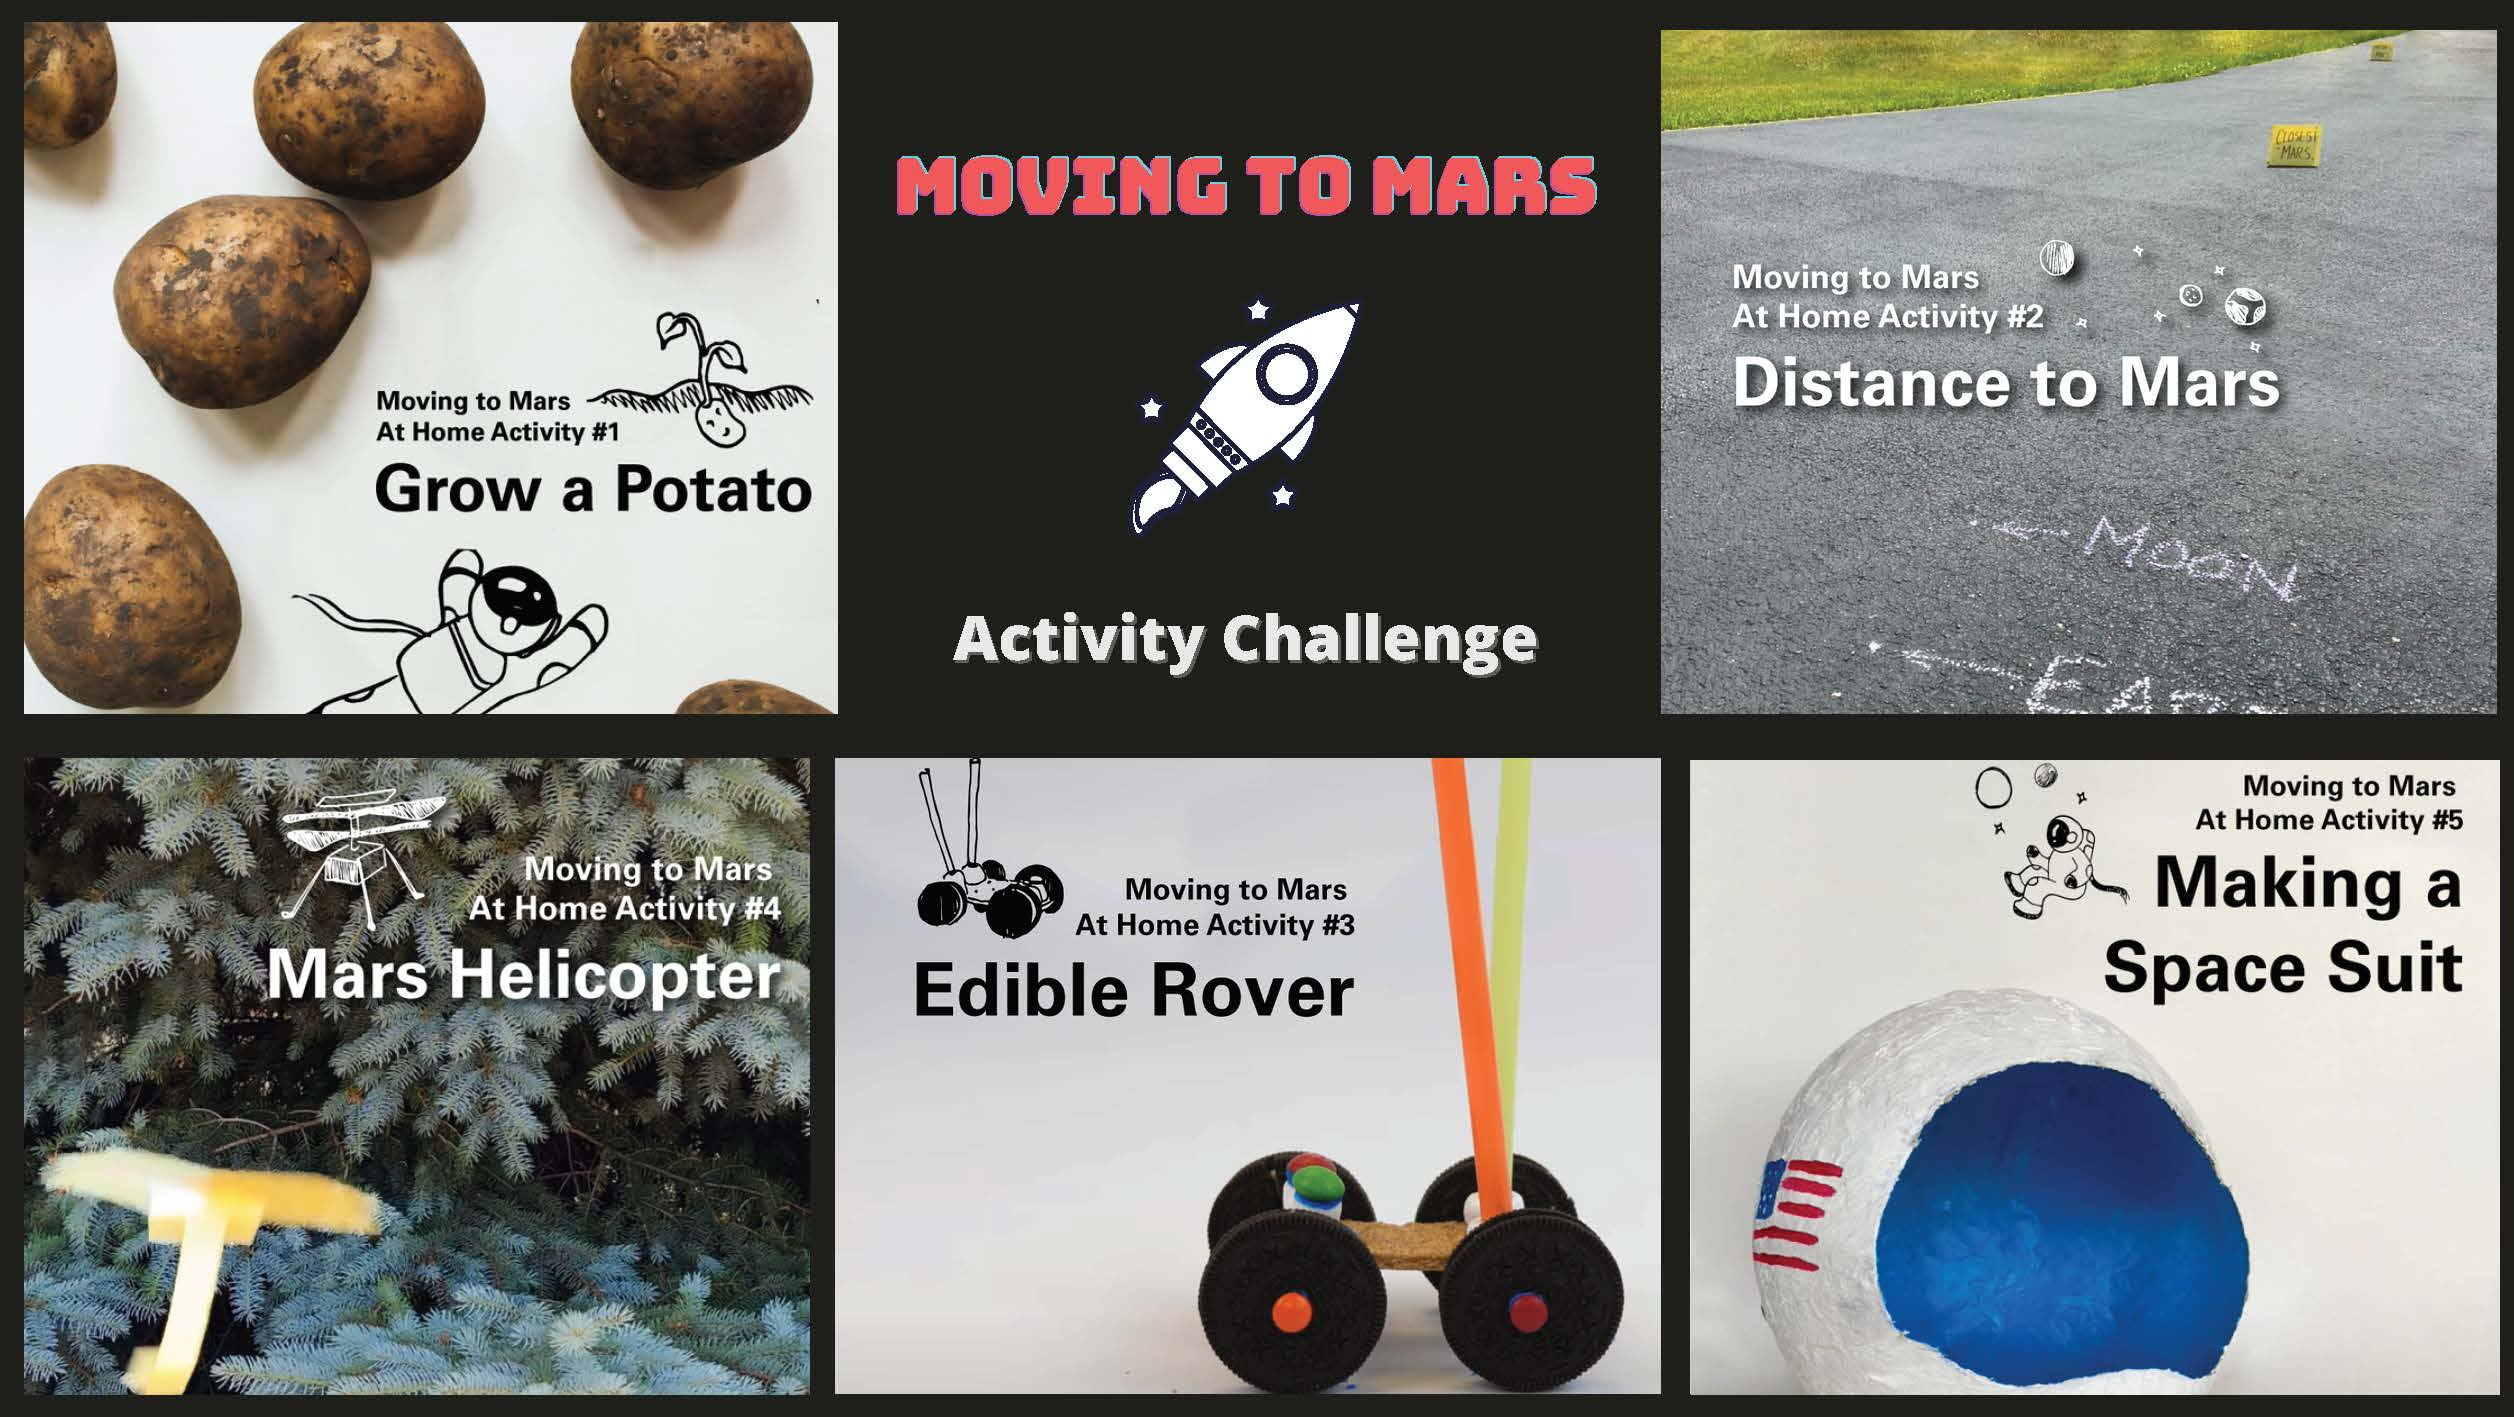 Moving to Mars activity challenge